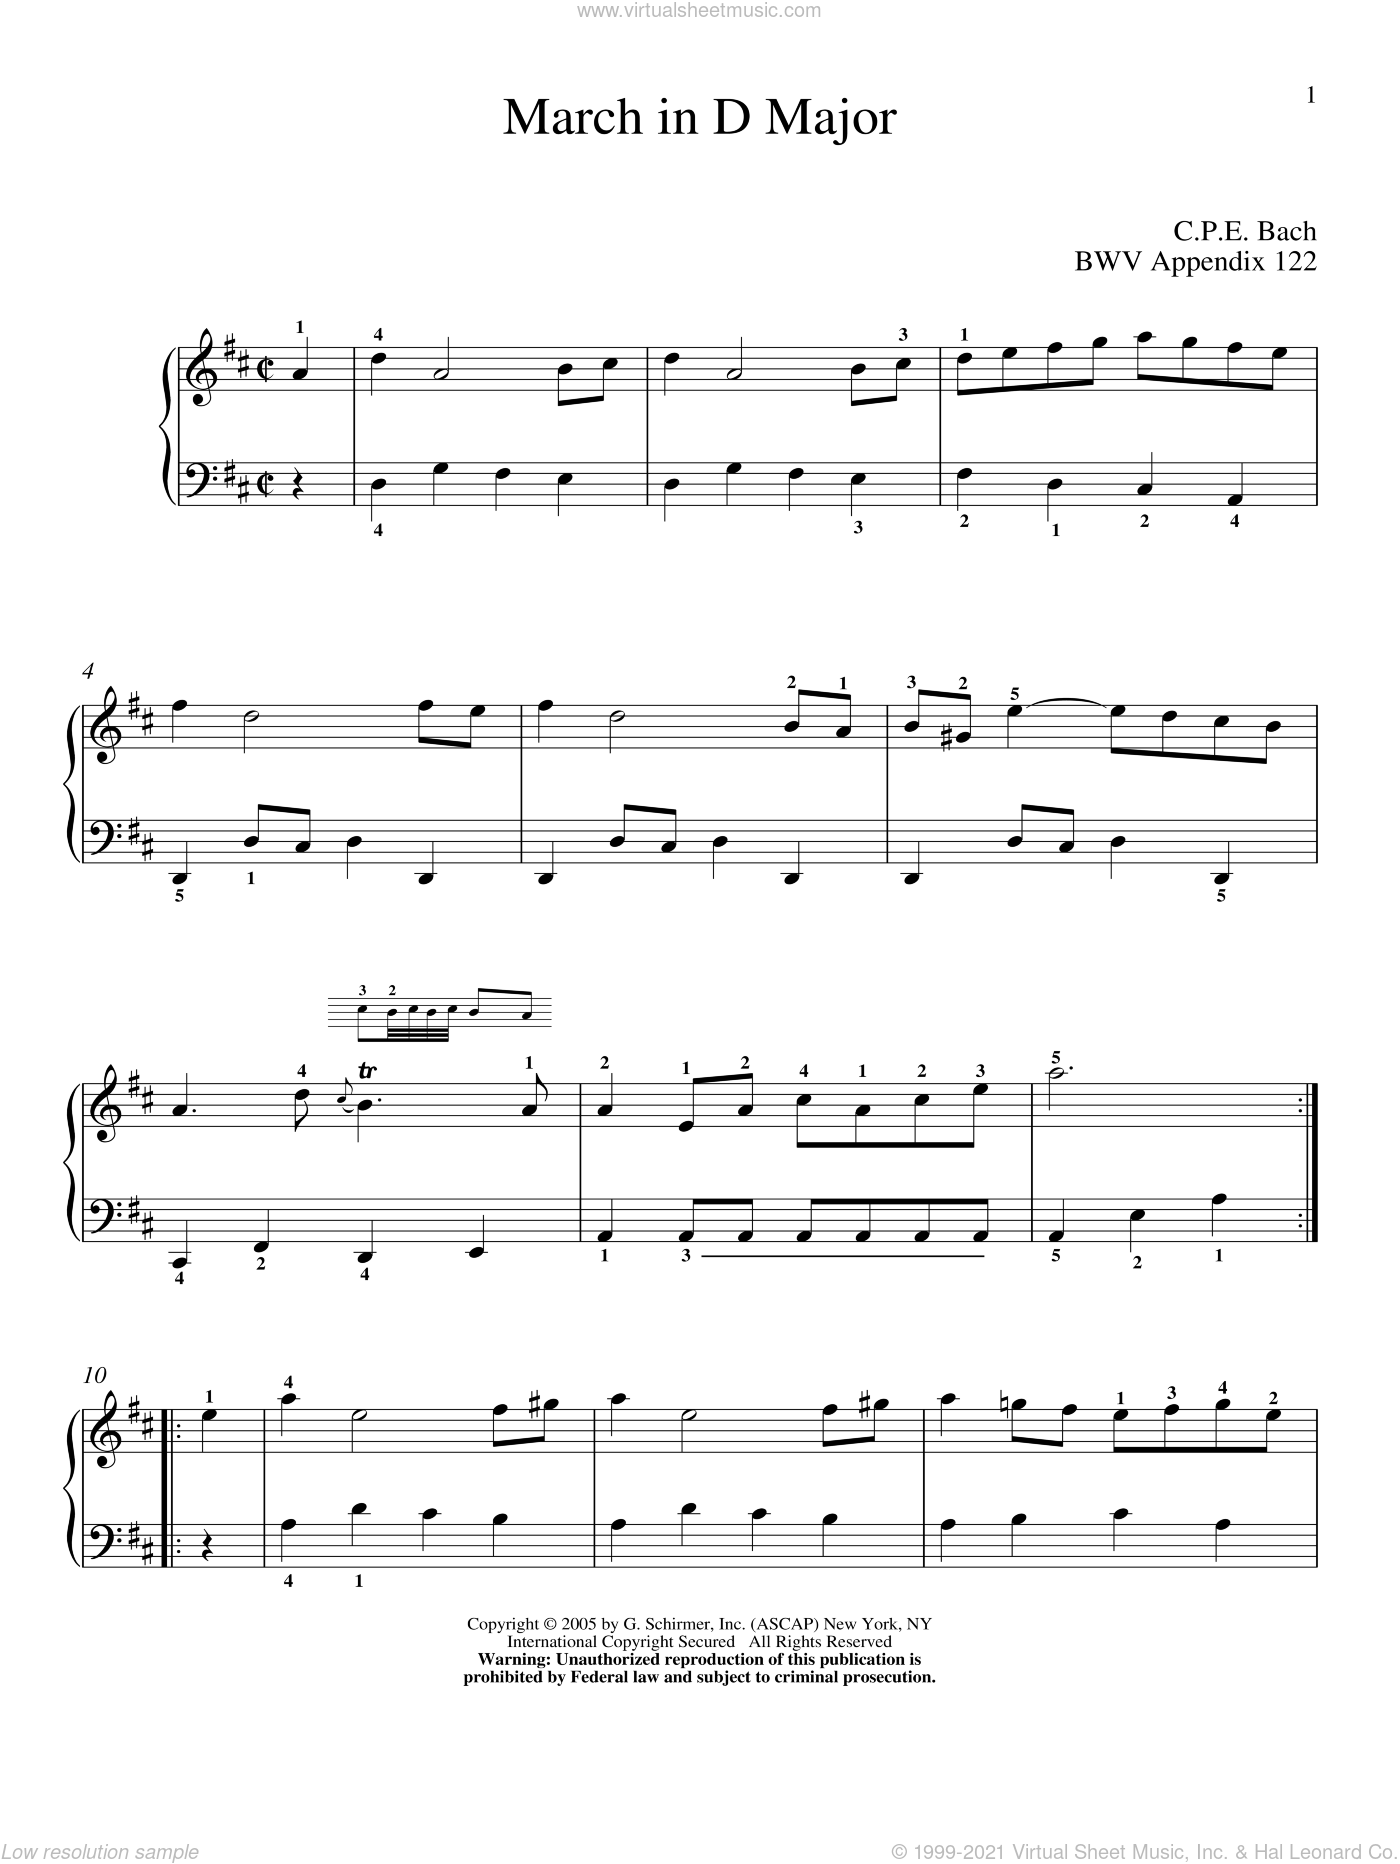 March In D Major sheet music for piano solo by Johann Sebastian Bach